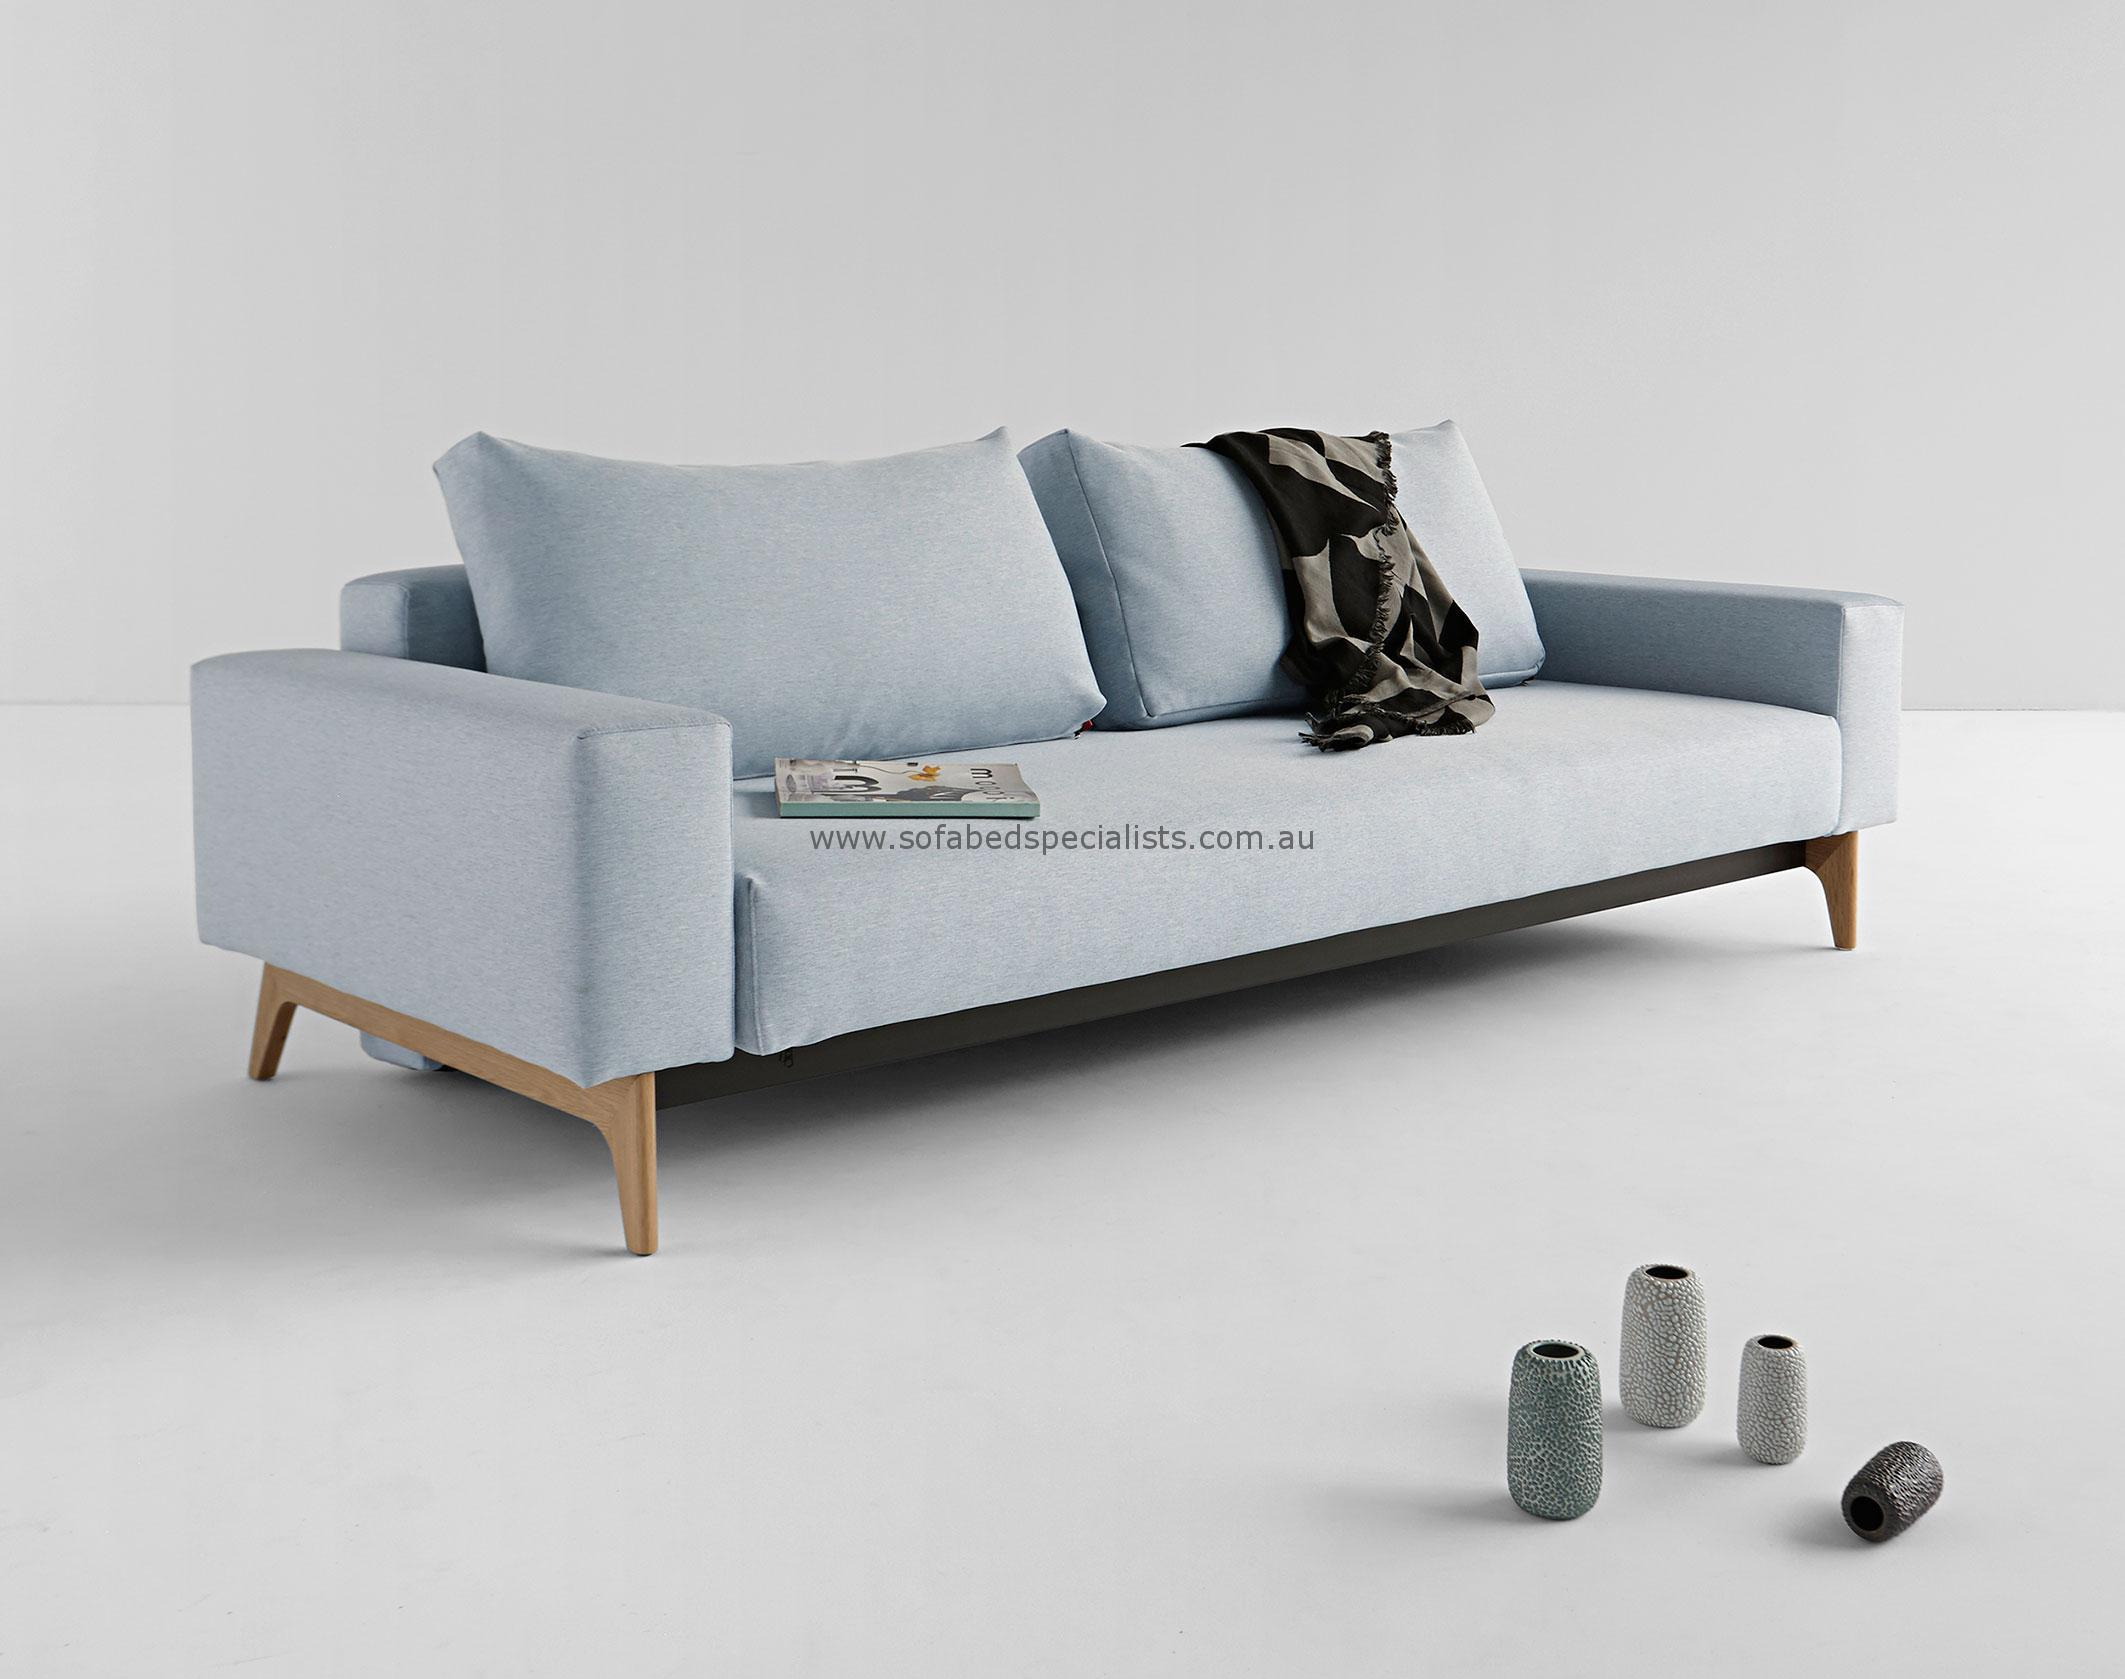 Idun Double Sofabed Sofa Bed Specialists